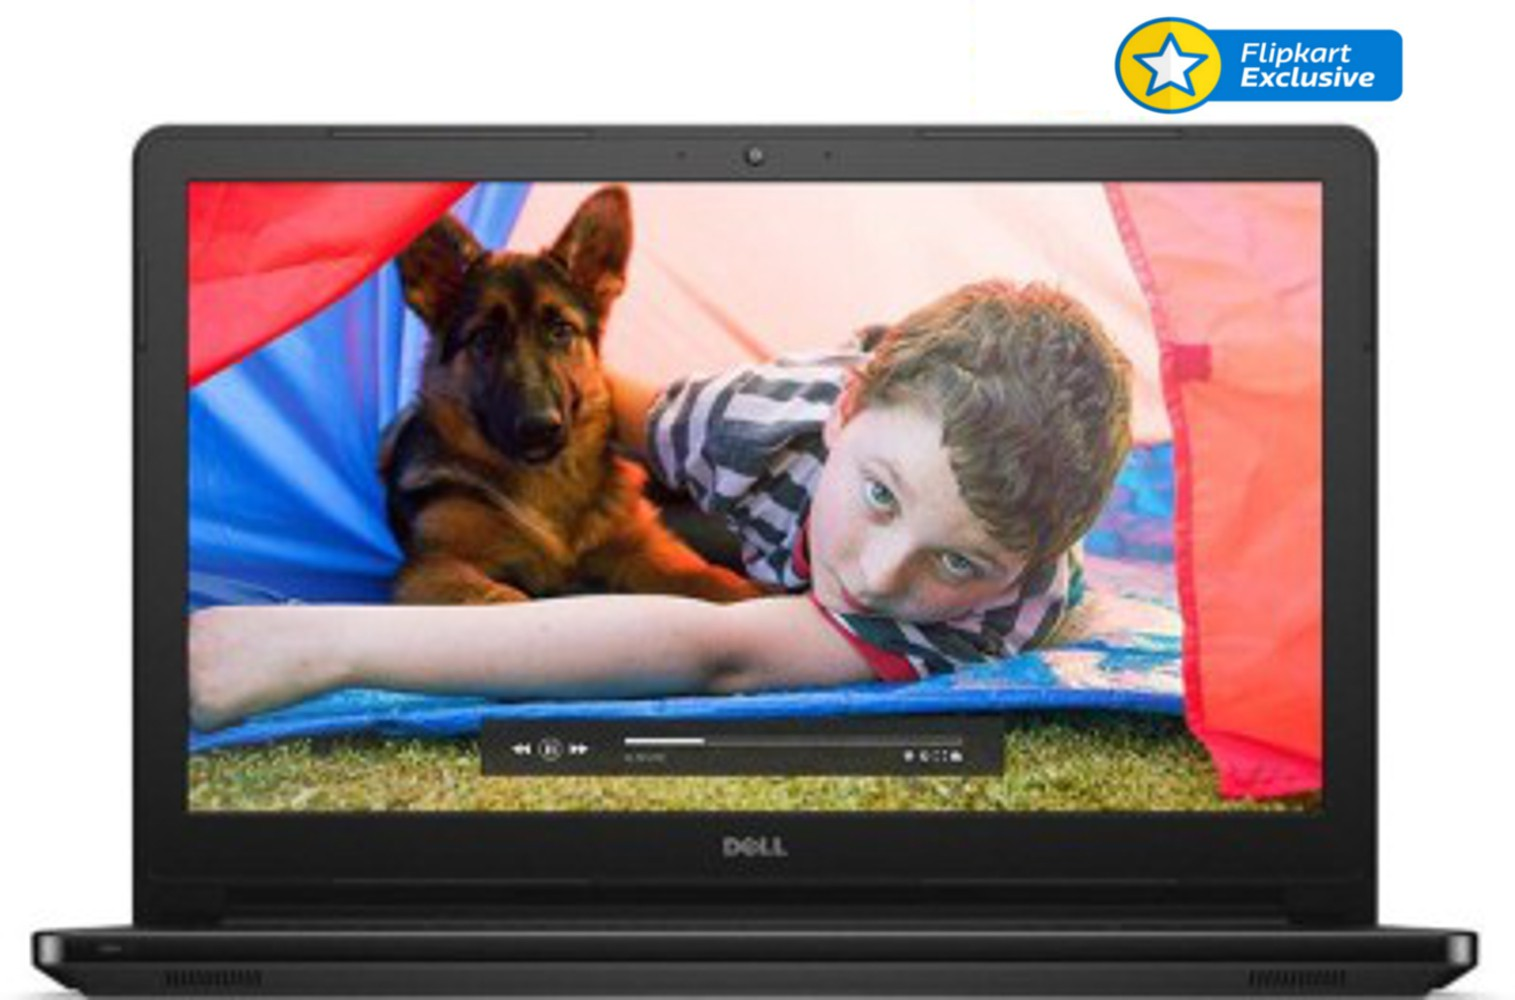 Deals - Behror - Just Rs. 37,990 <br> From Dell<br> Category - computers<br> Business - Flipkart.com